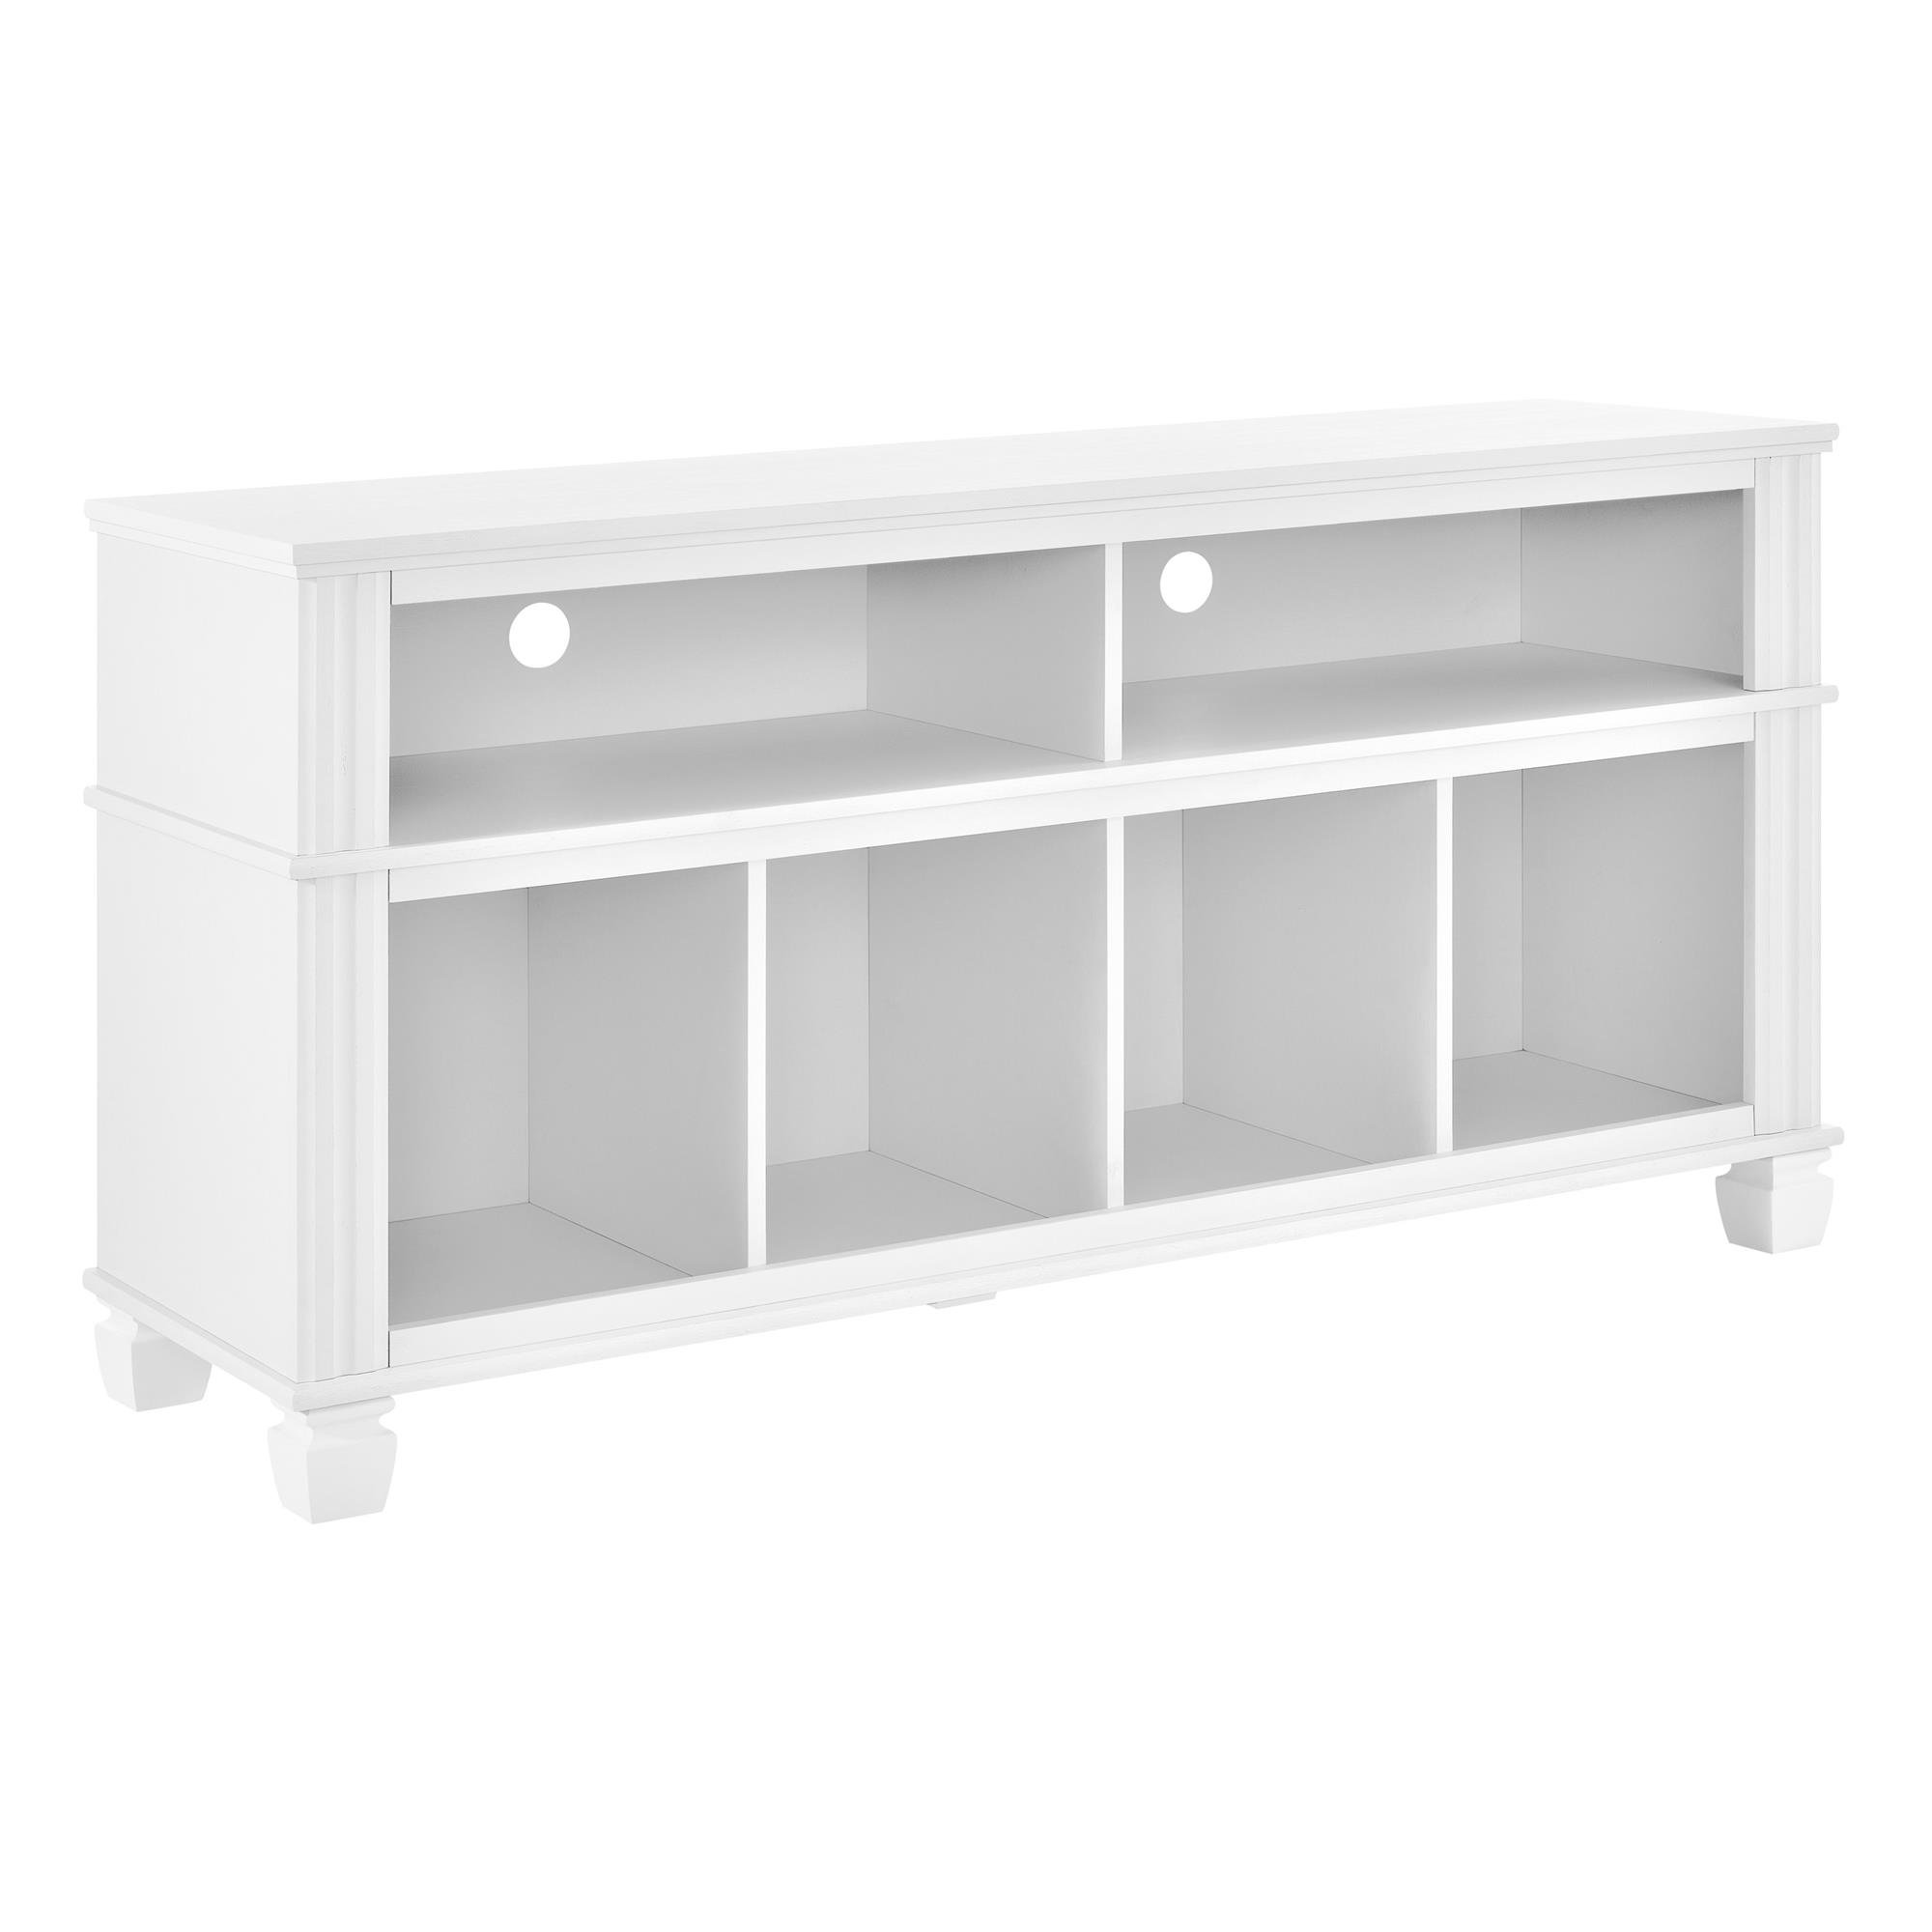 Ameriwood Home Woodcrest TV Stand for TVs up to 55'', White by Ameriwood Home